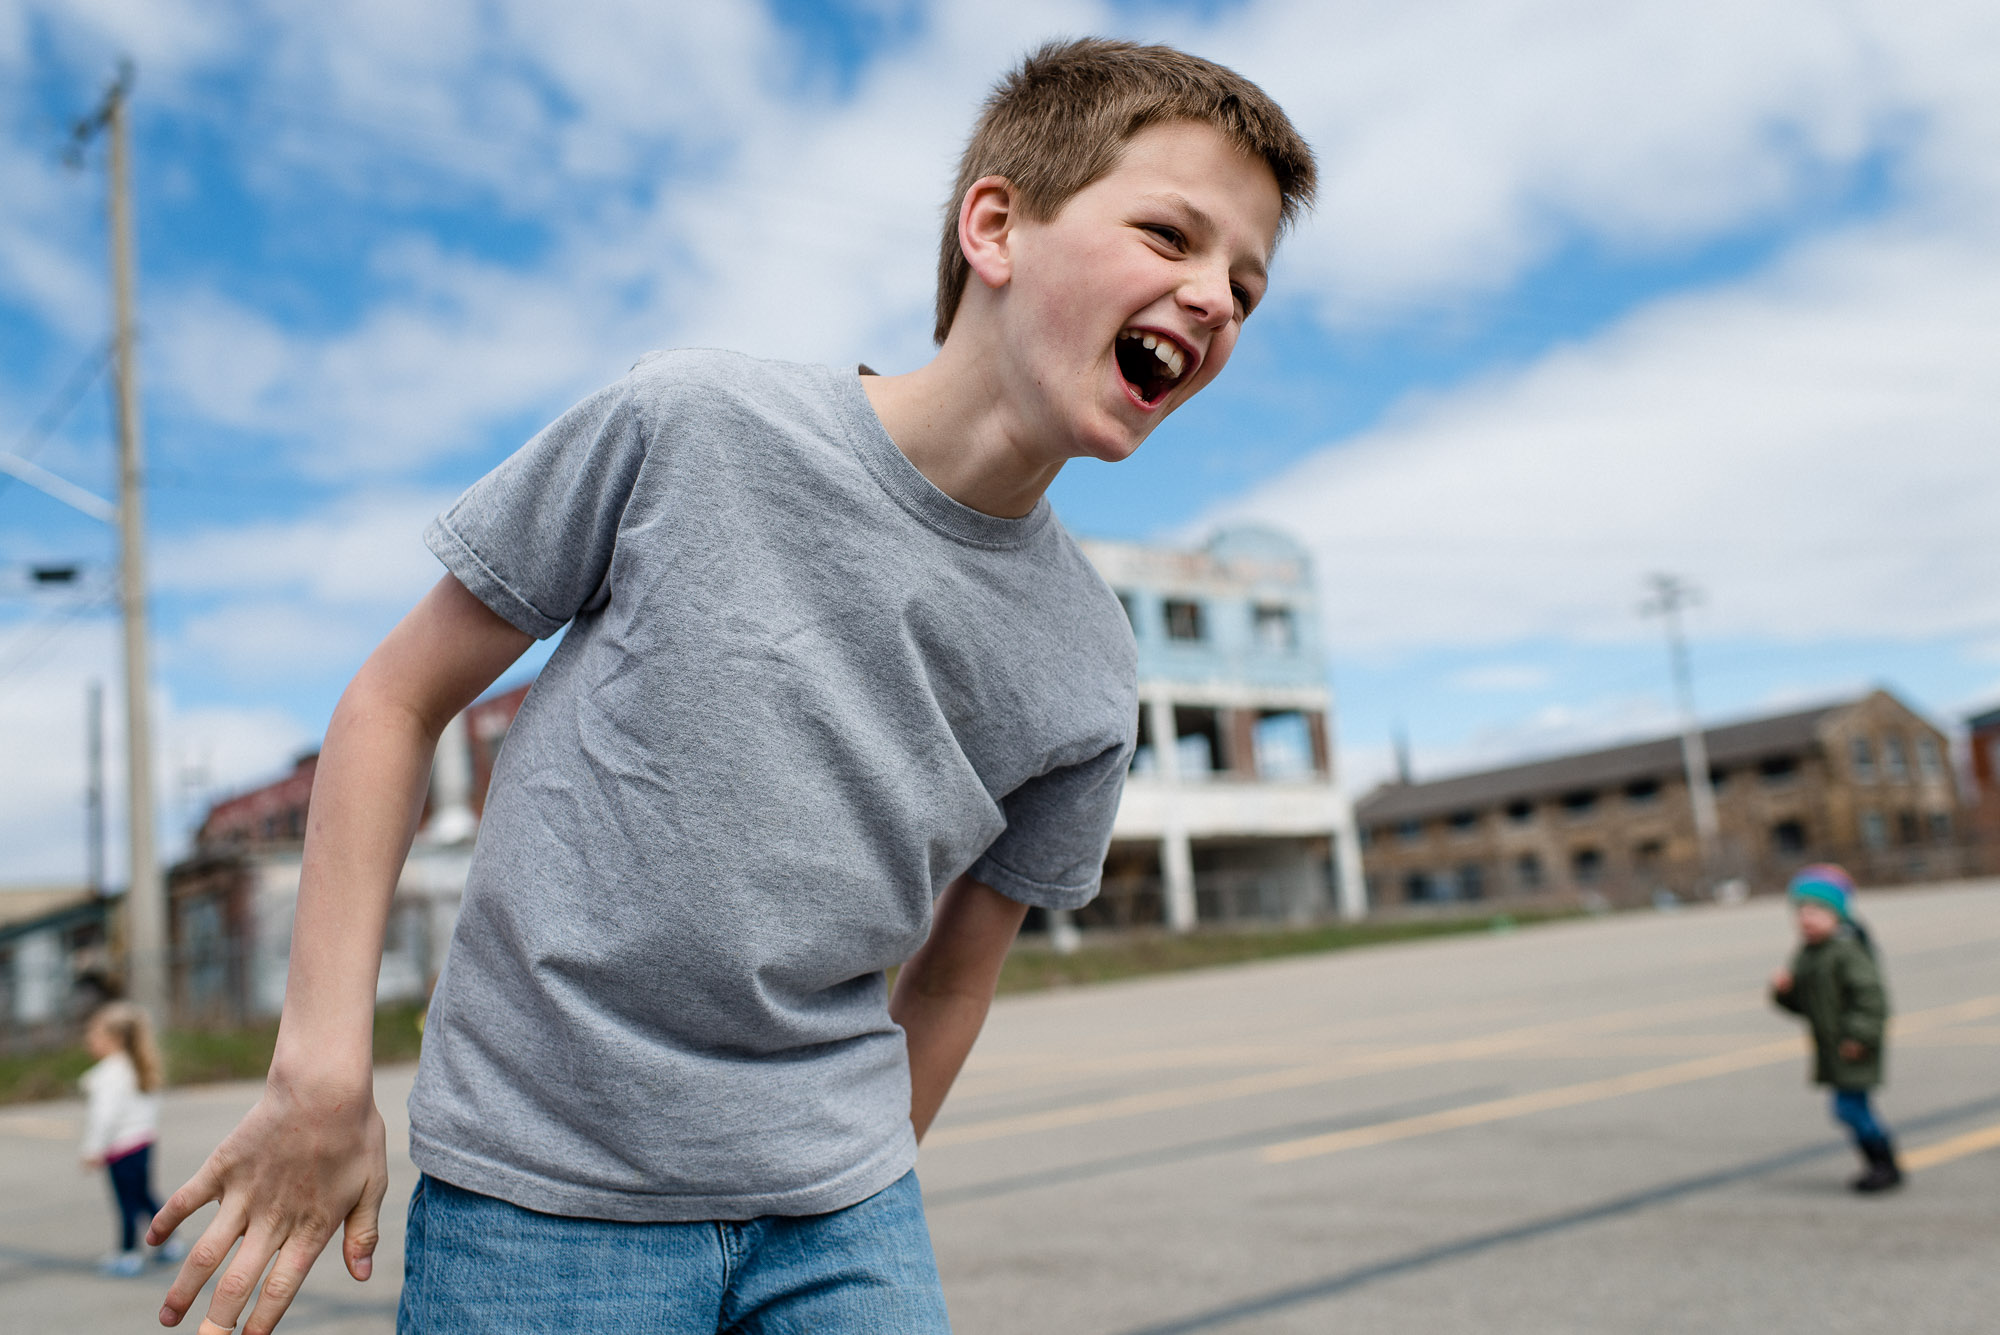 boy laughs against a blue sky with clouds